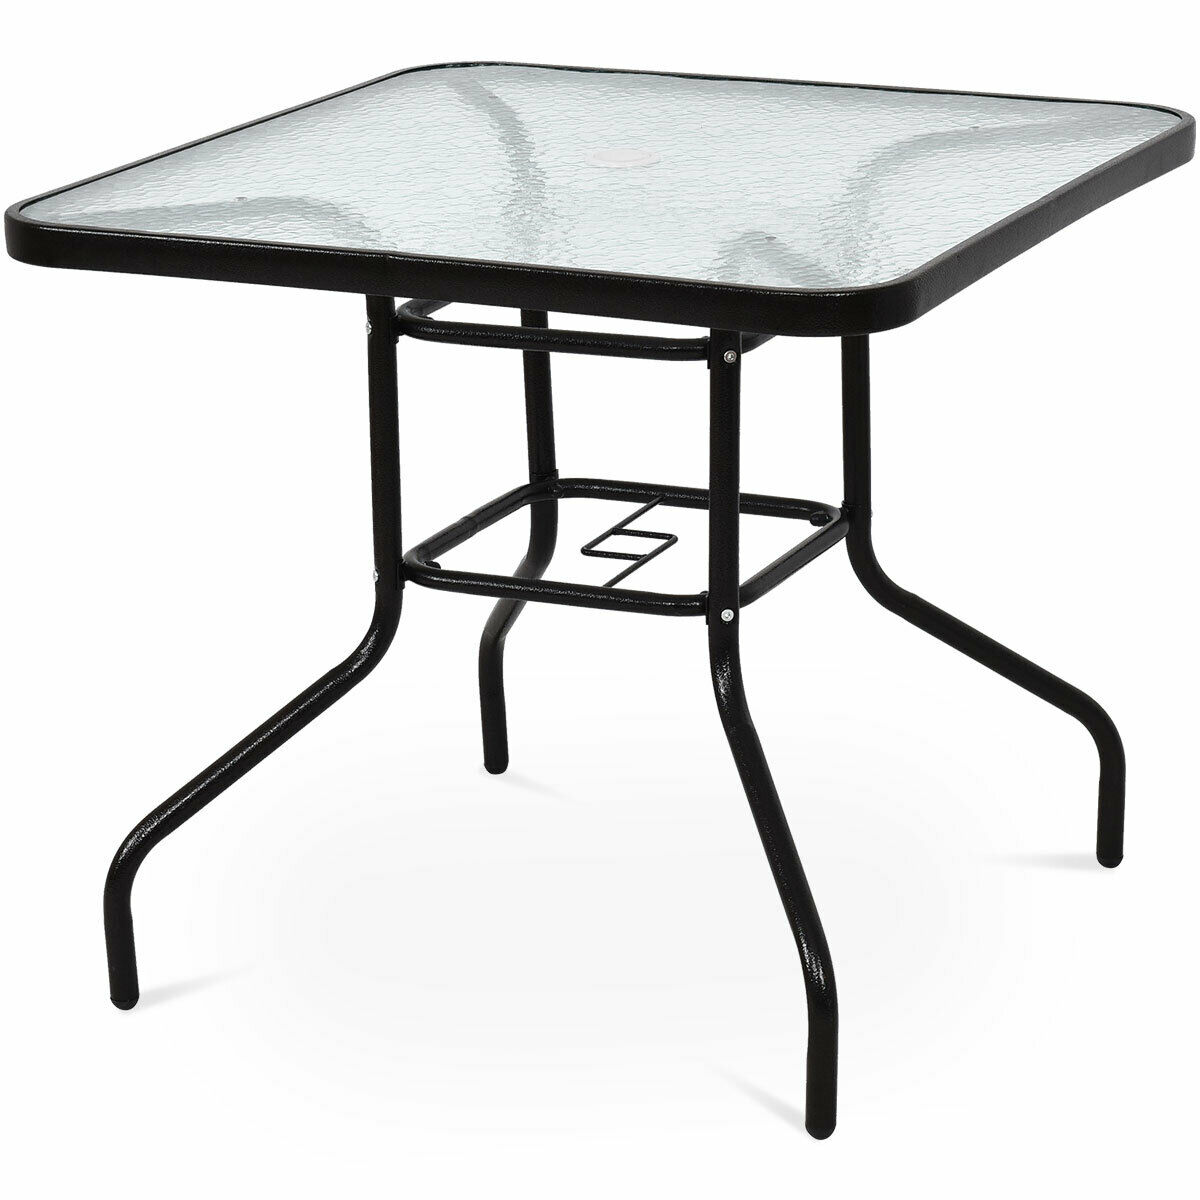 costway 32 patio square table steel frame dining table patio furniture glass top walmart com